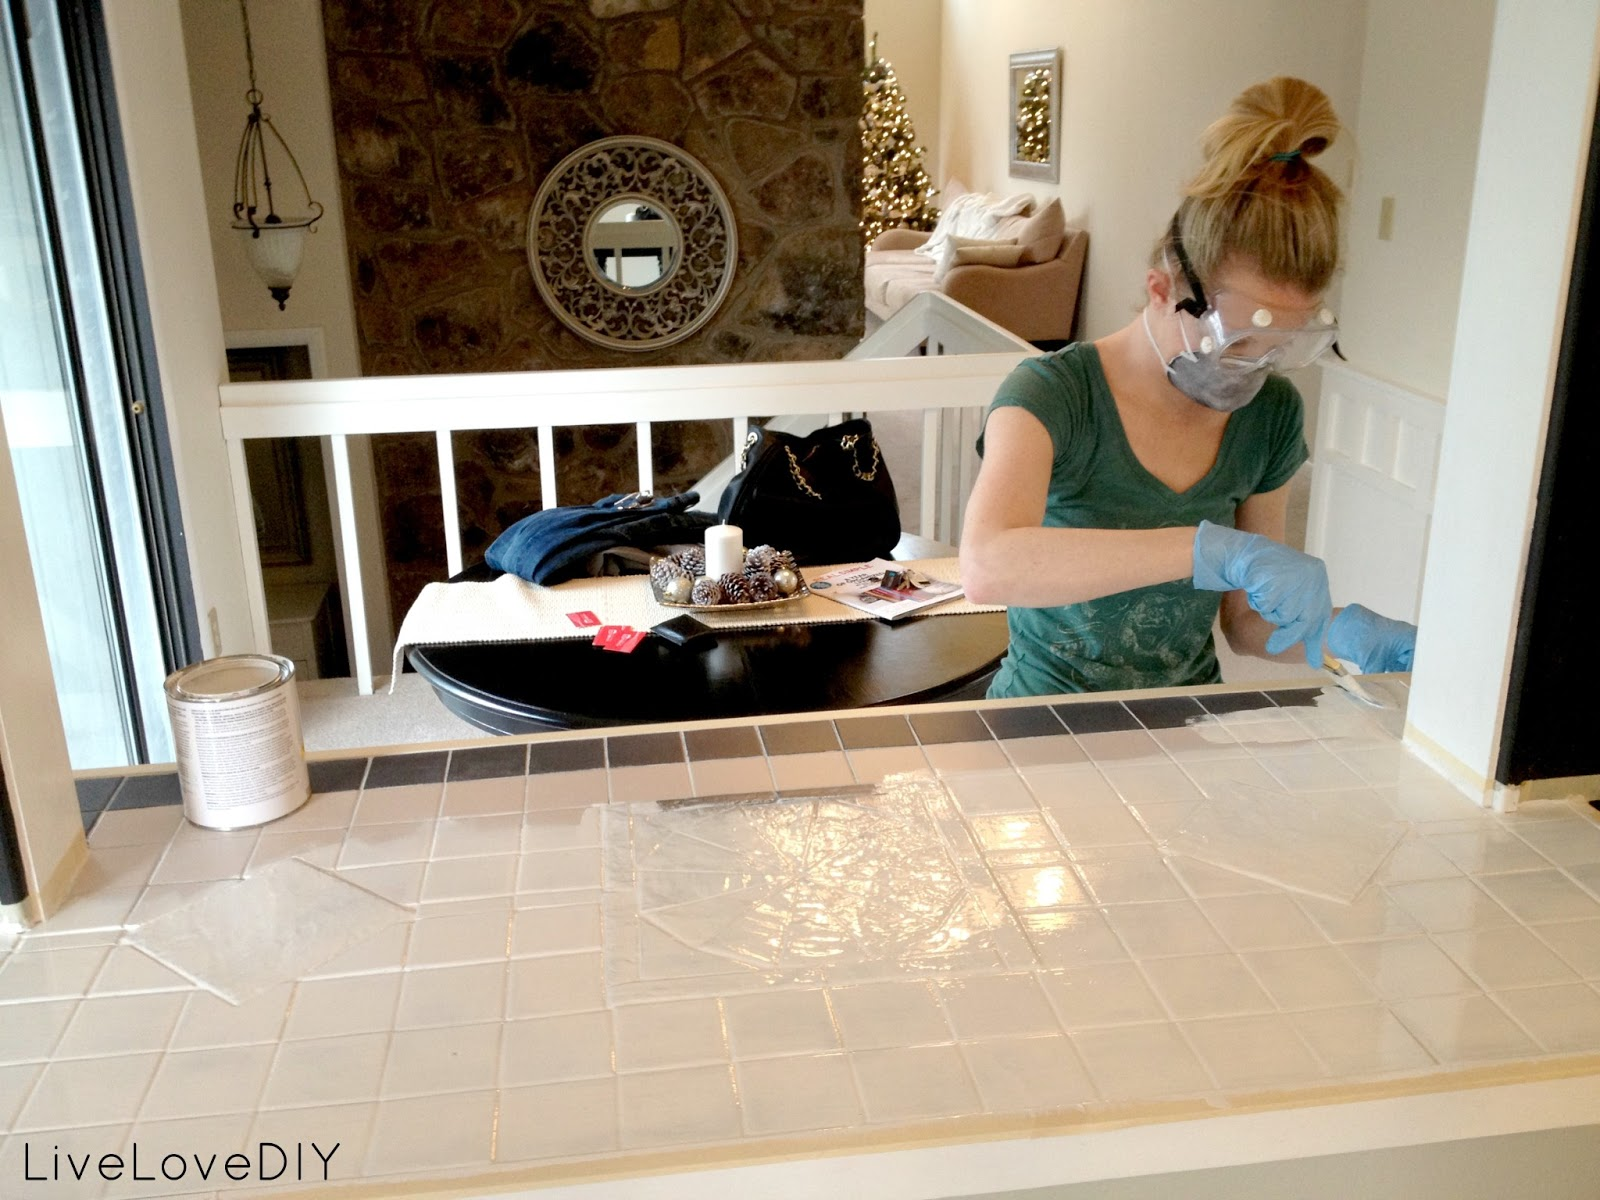 Painting Tiles In The Kitchen How To Paint Tile And Update Your Kitchen Livelovediy Bloglovin